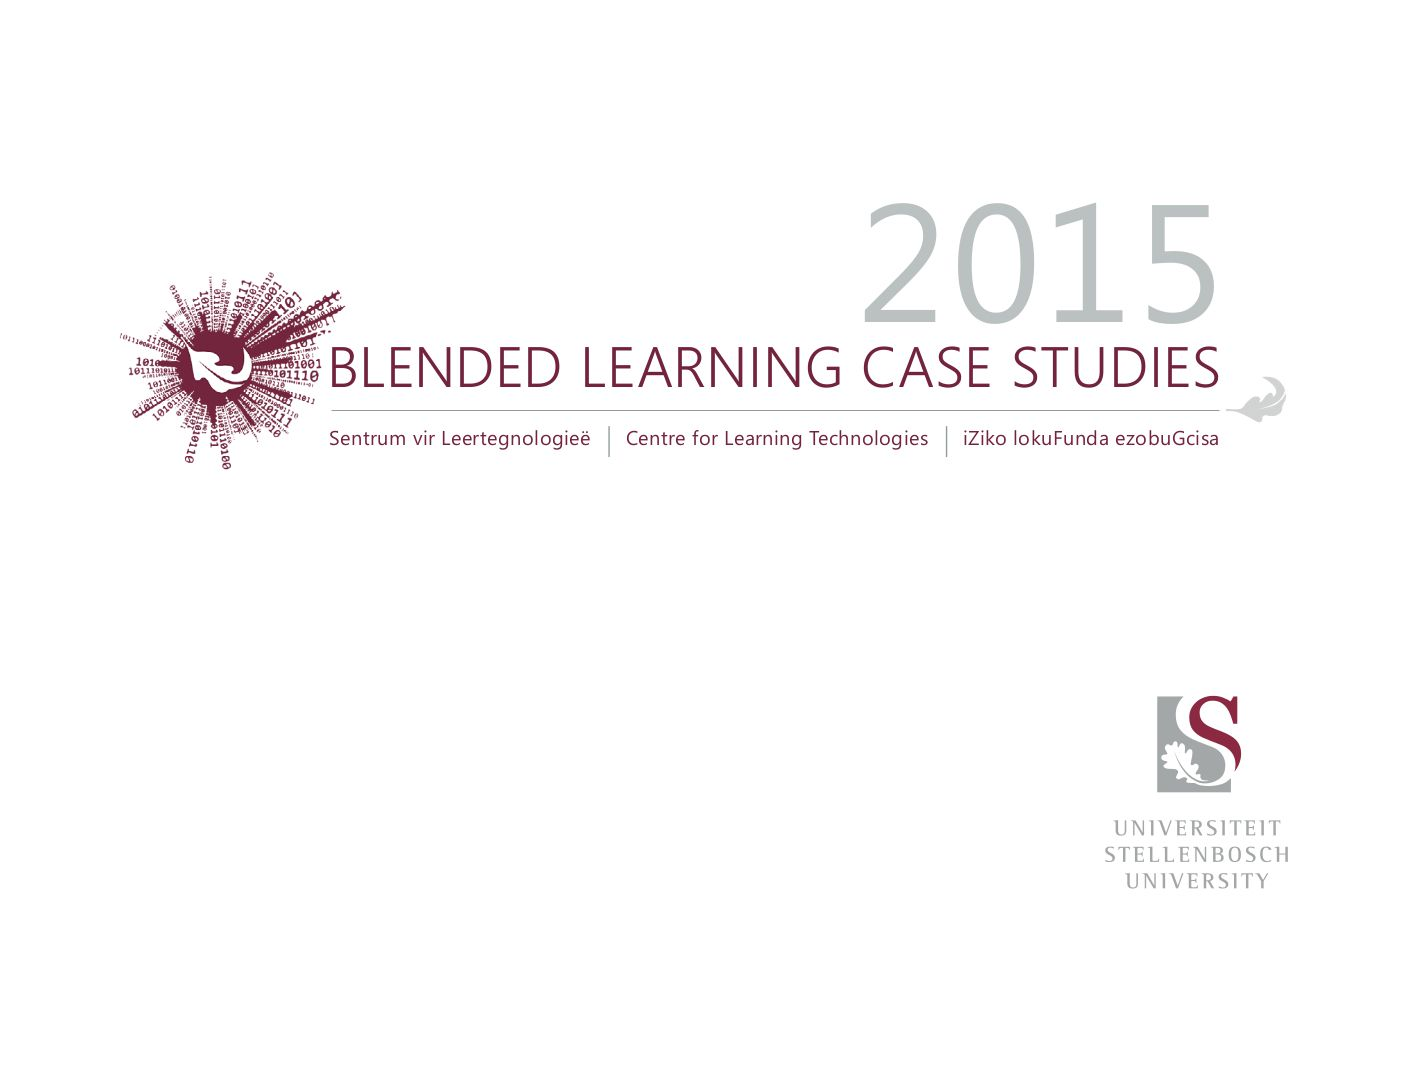 blended learning case studies 2015 SU HELTASA PDSIG